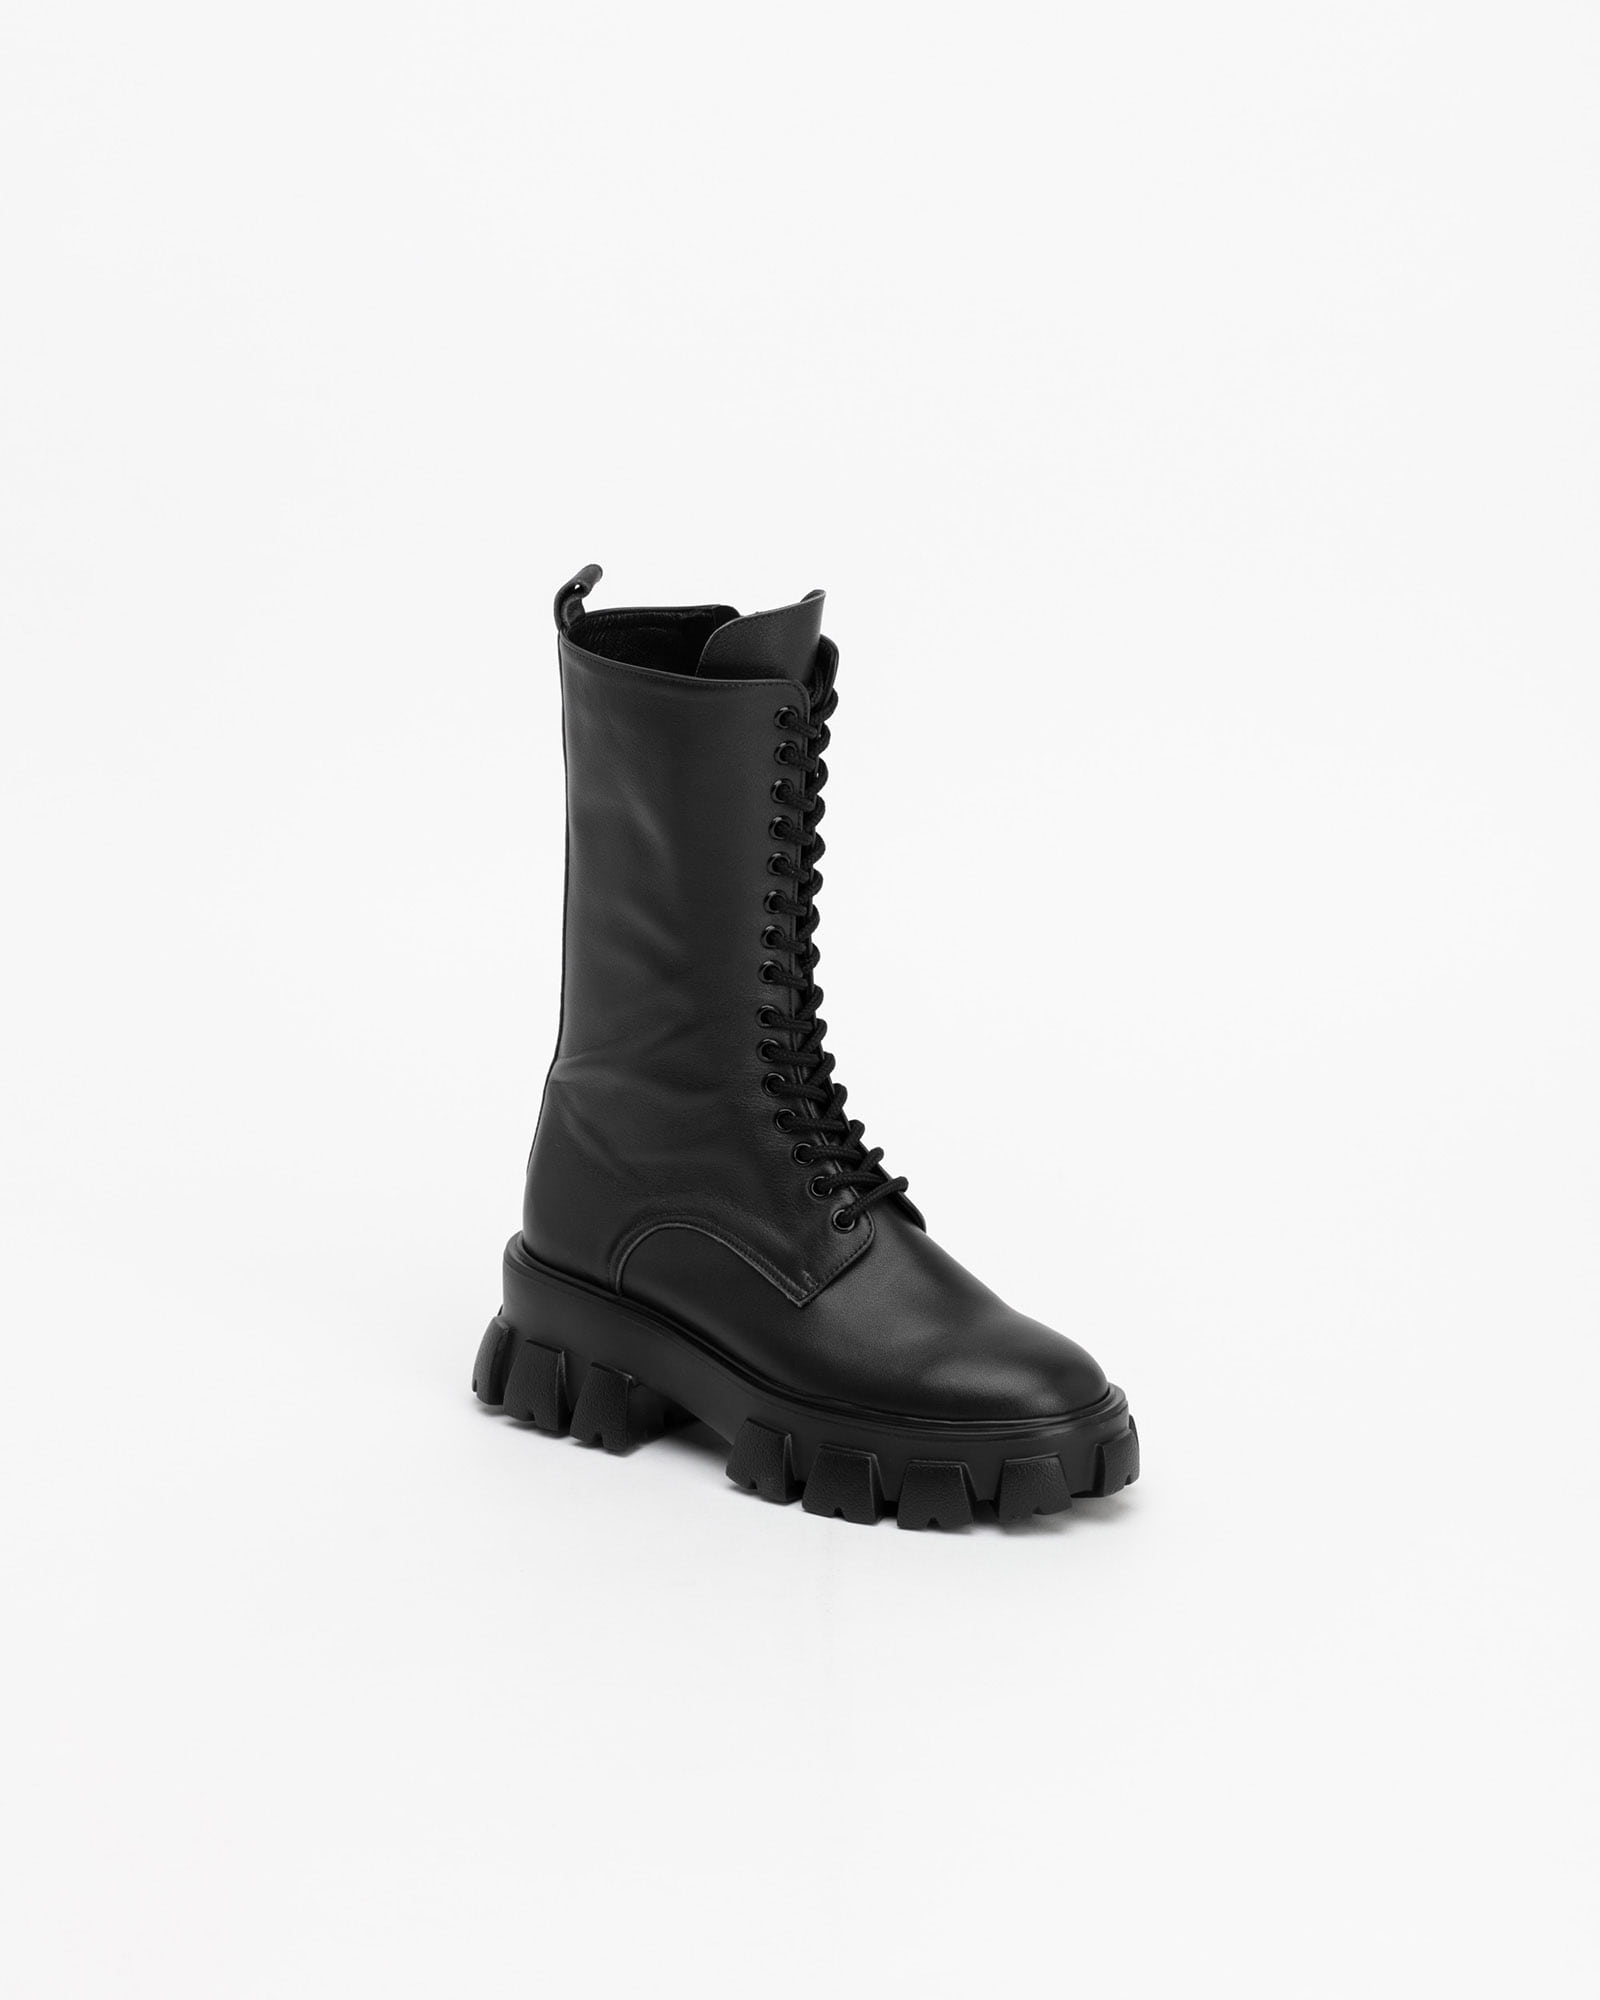 Trigera Lug-sole Combat Boots in Black